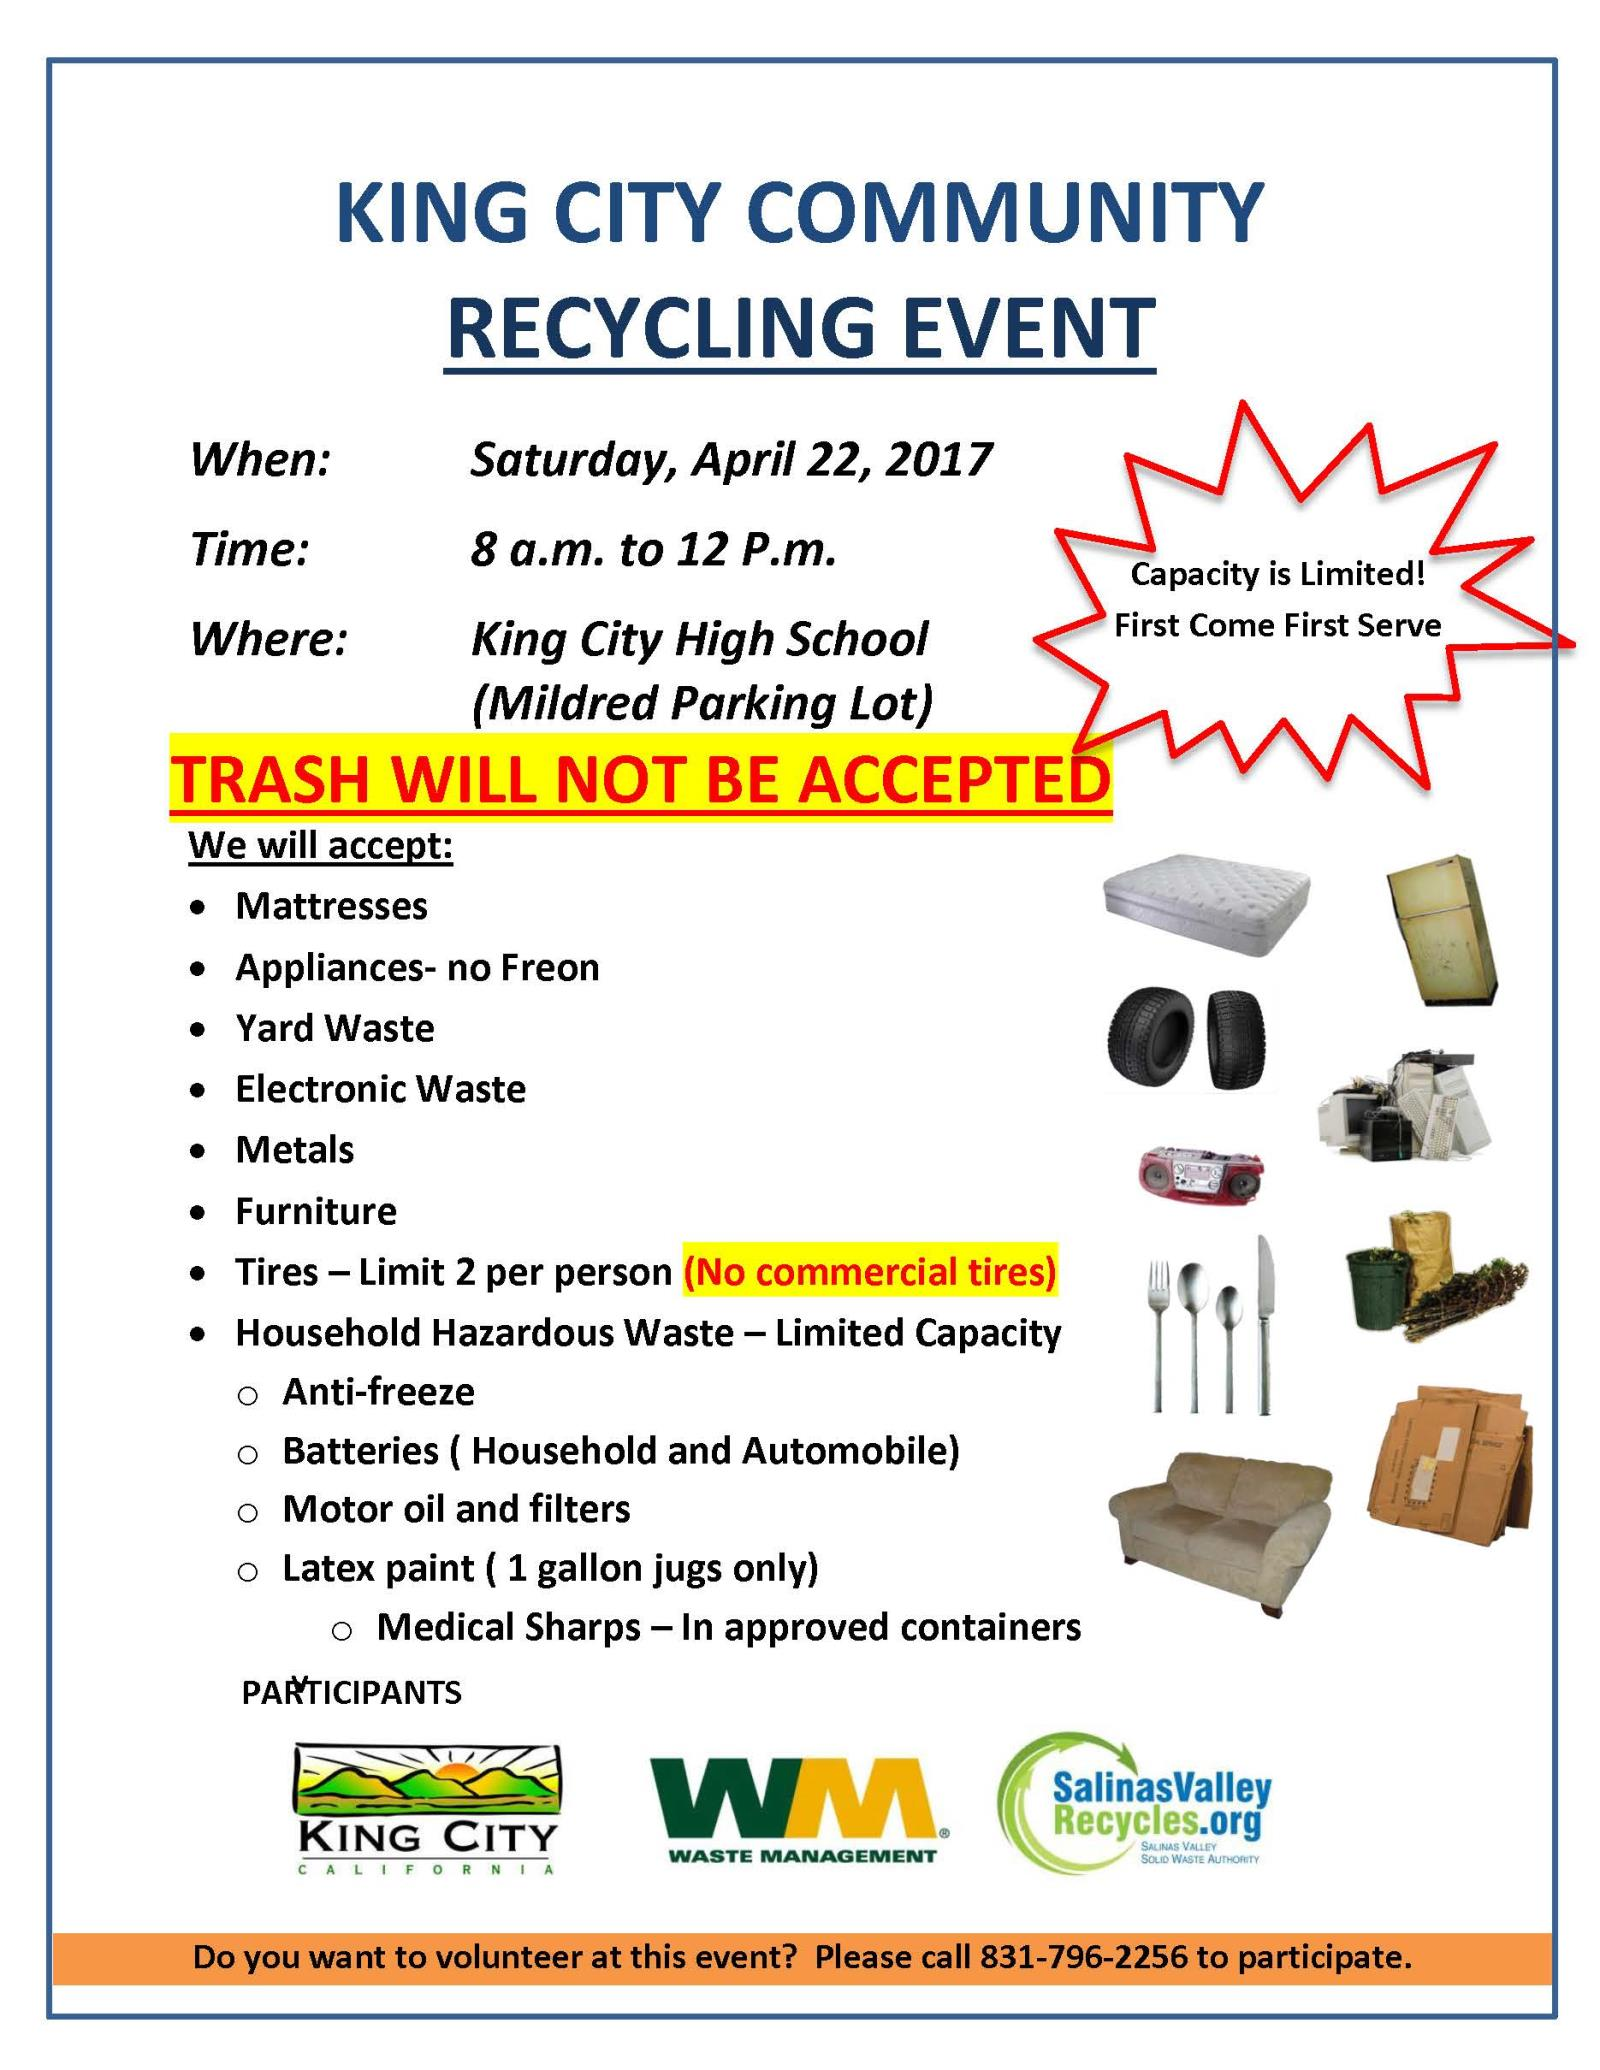 King City Community Recycle Event Flyer 4-22-2017 _Page_1